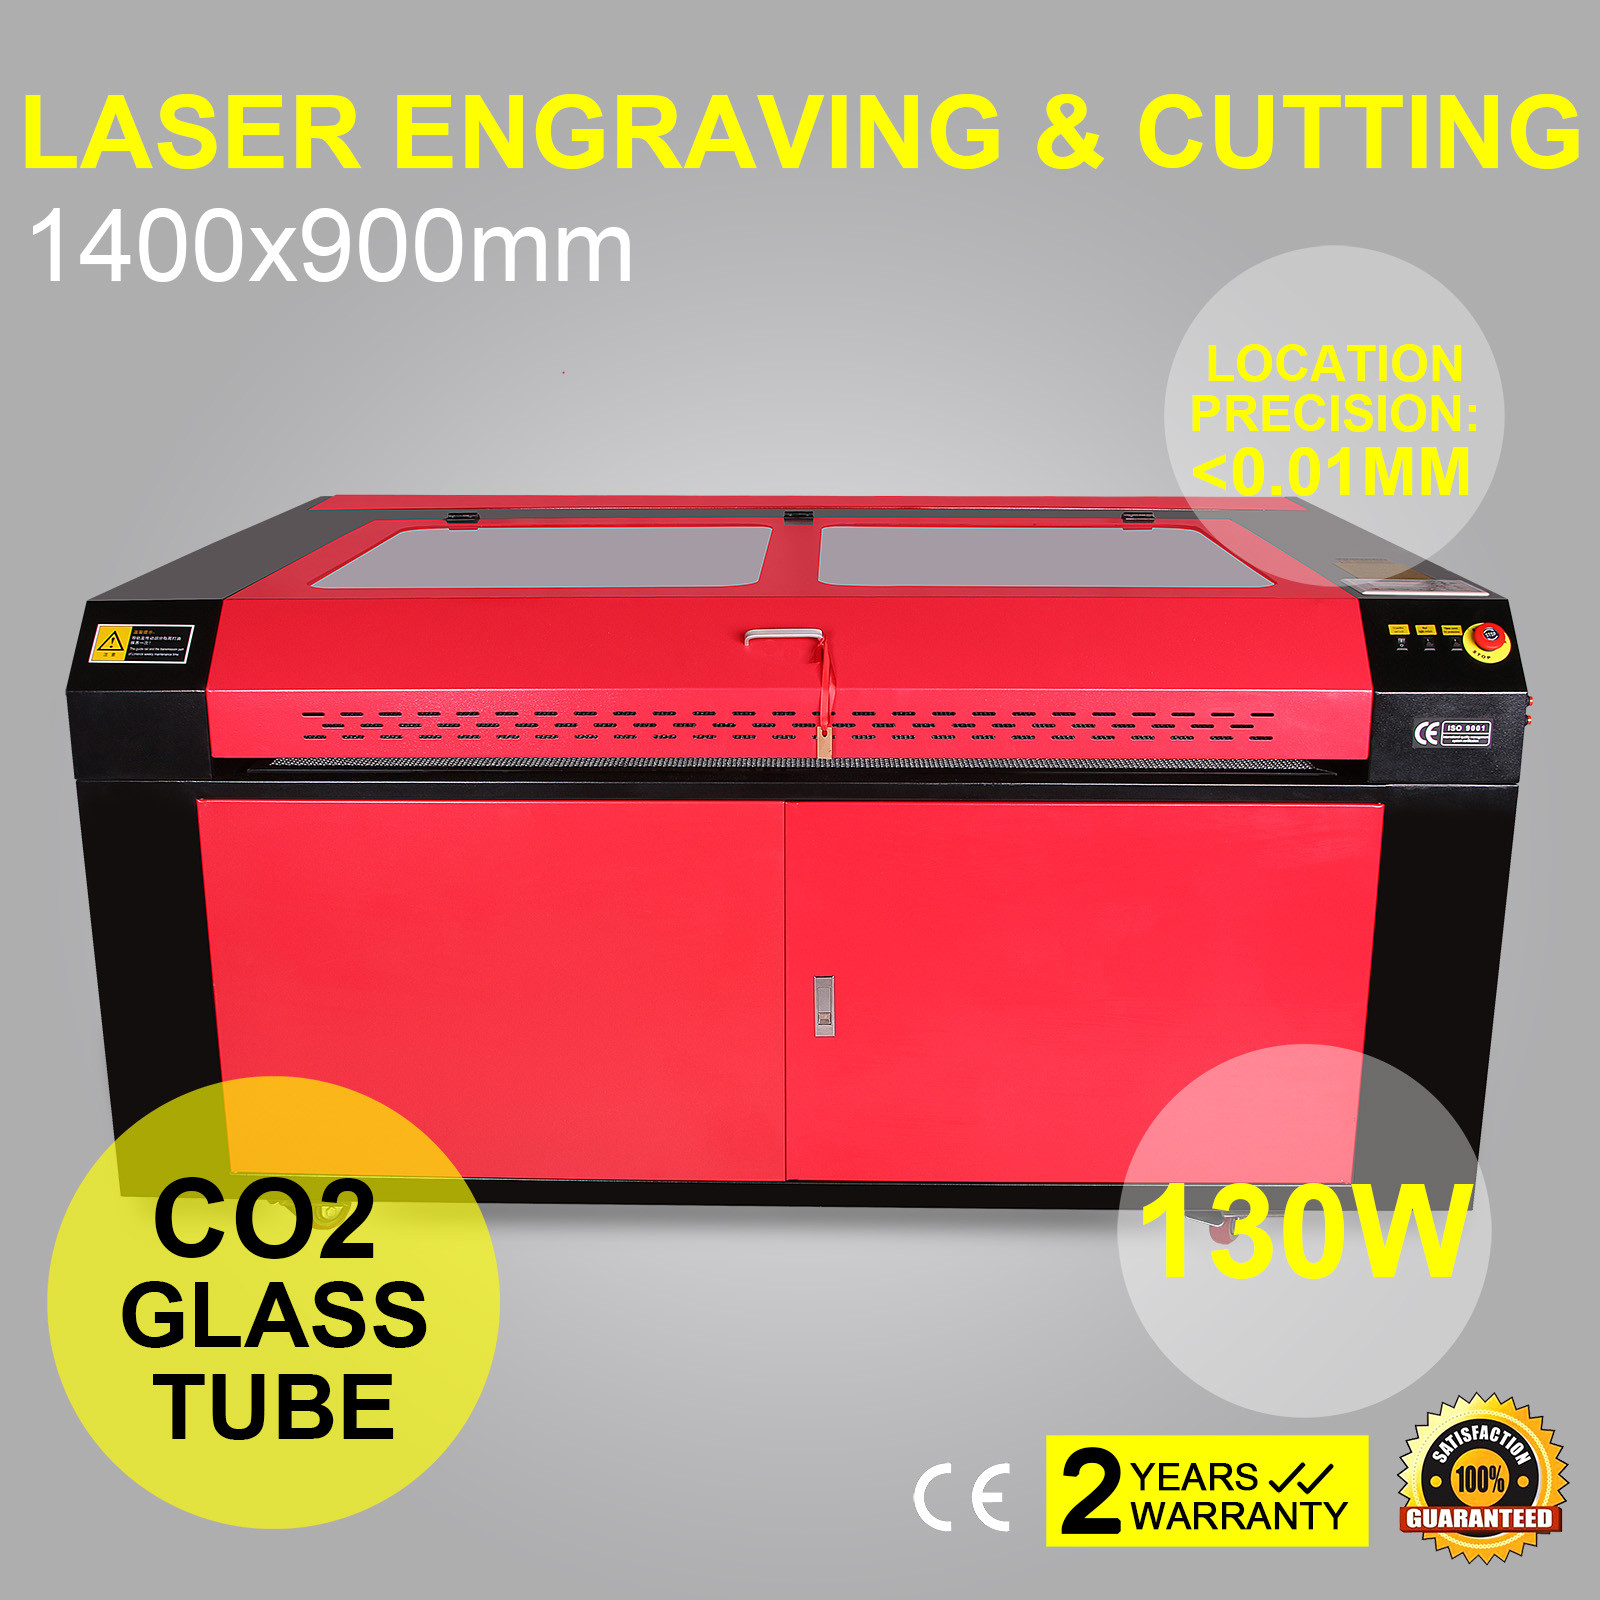 CO2-Usb-Laser-Engraving-Cutting-Machine-Engraver-Cutter-Air-Assist-Carving thumbnail 71